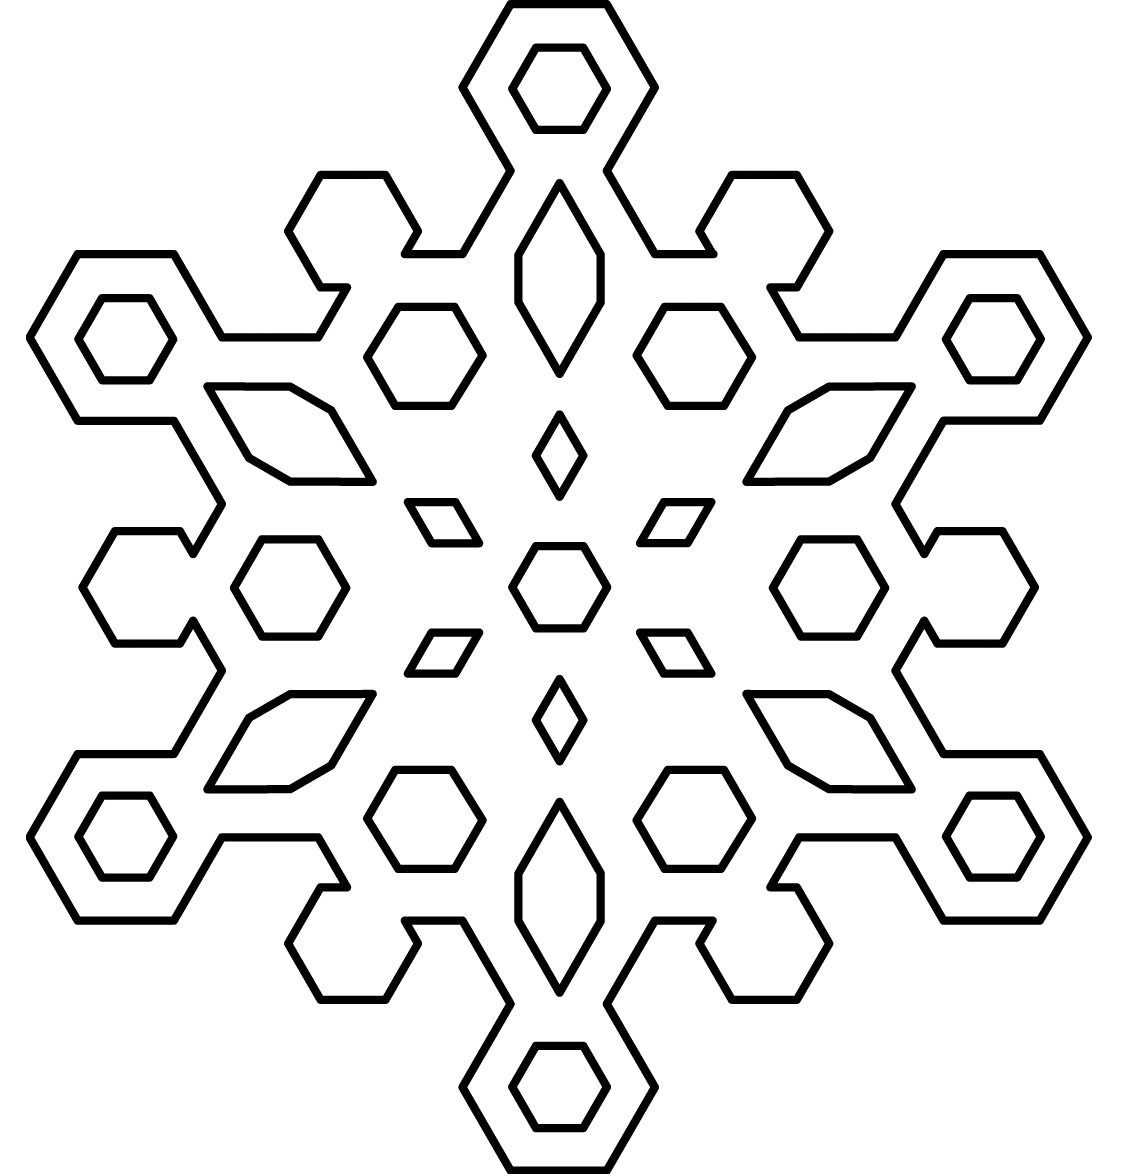 snowflake coloring pages for children - photo#6